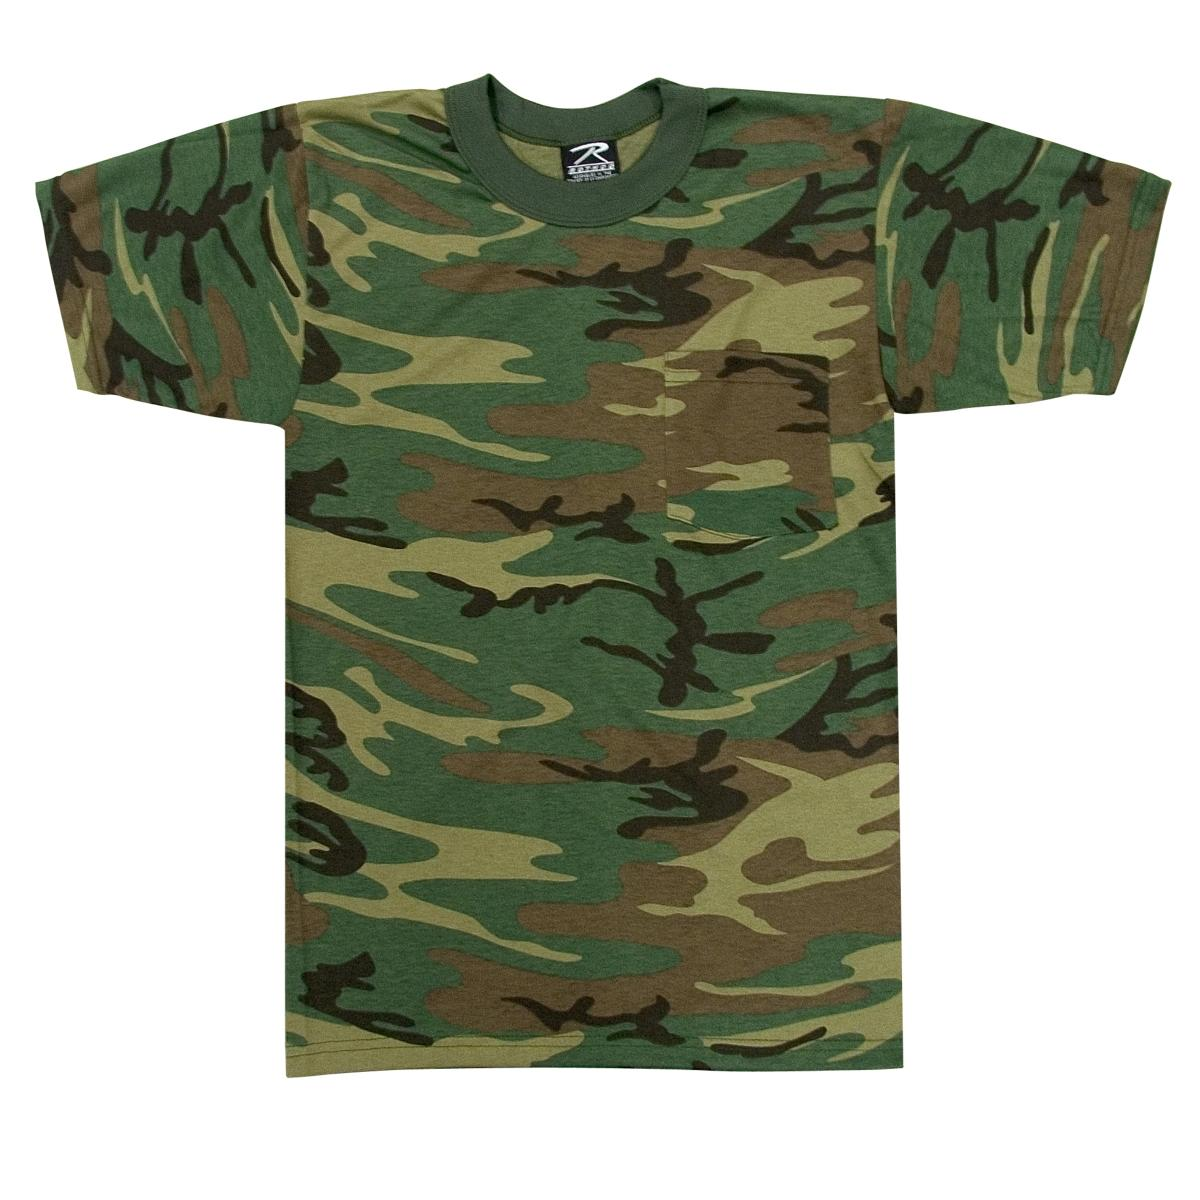 Woodland Camouflage T-Shirt with Pocket